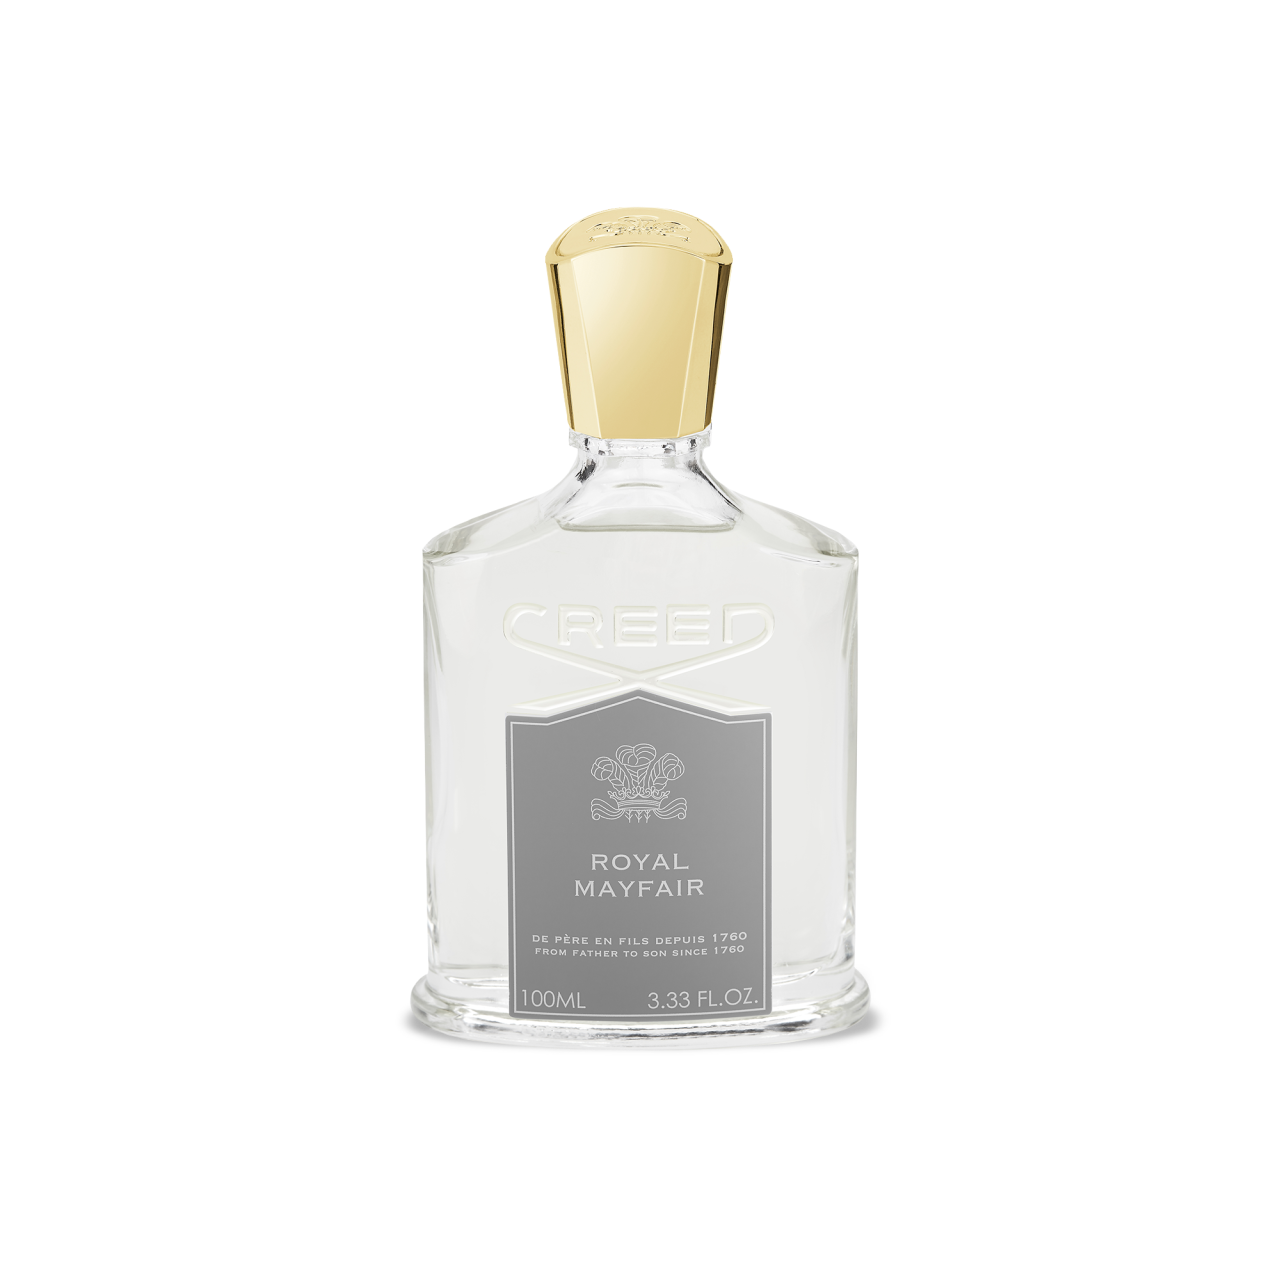 Royal Mayfair 34oz Fashionable Mens Cologne Creed Official Site